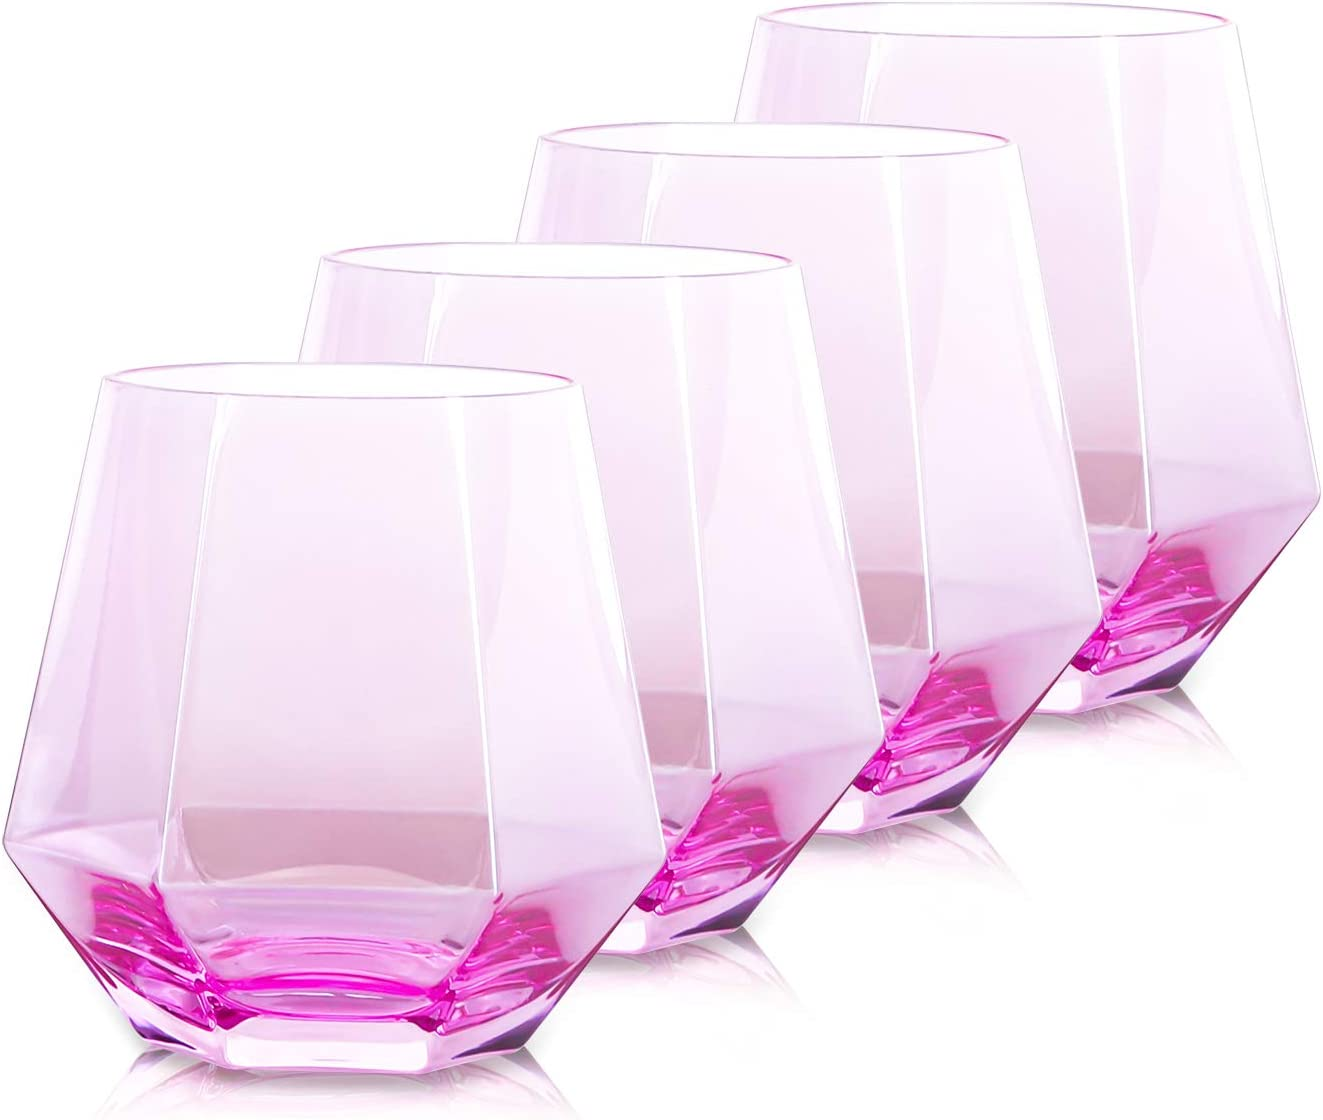 Pink Drinking Glasses Set of 4, Beasea 10 oz Whiskey Glasses Wine Glass Cocktail Glasses Diamond Whiskey Tumblers Old Fashioned Scotch Glass for Bourbon & Rock Style